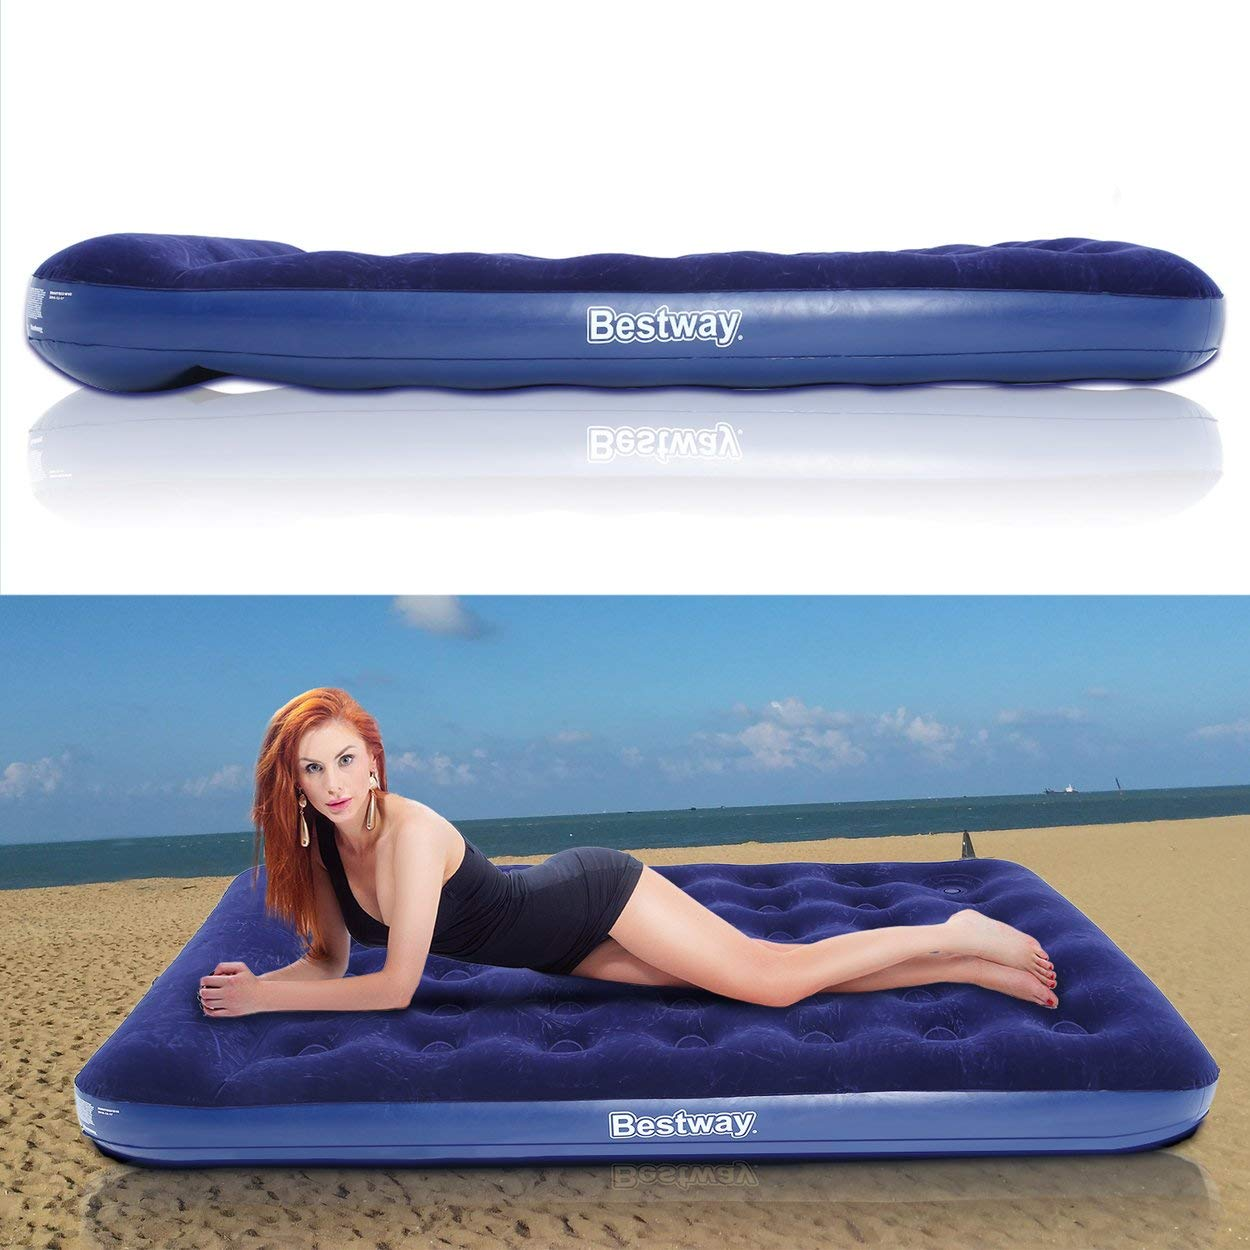 Dasny 2 Persons Large Size Air Moistureproof Camping Mats Inflatable Air Bed Outdoor Picnic Beach Mattress Sleeping Mats with Pump by Dasny (Image #8)